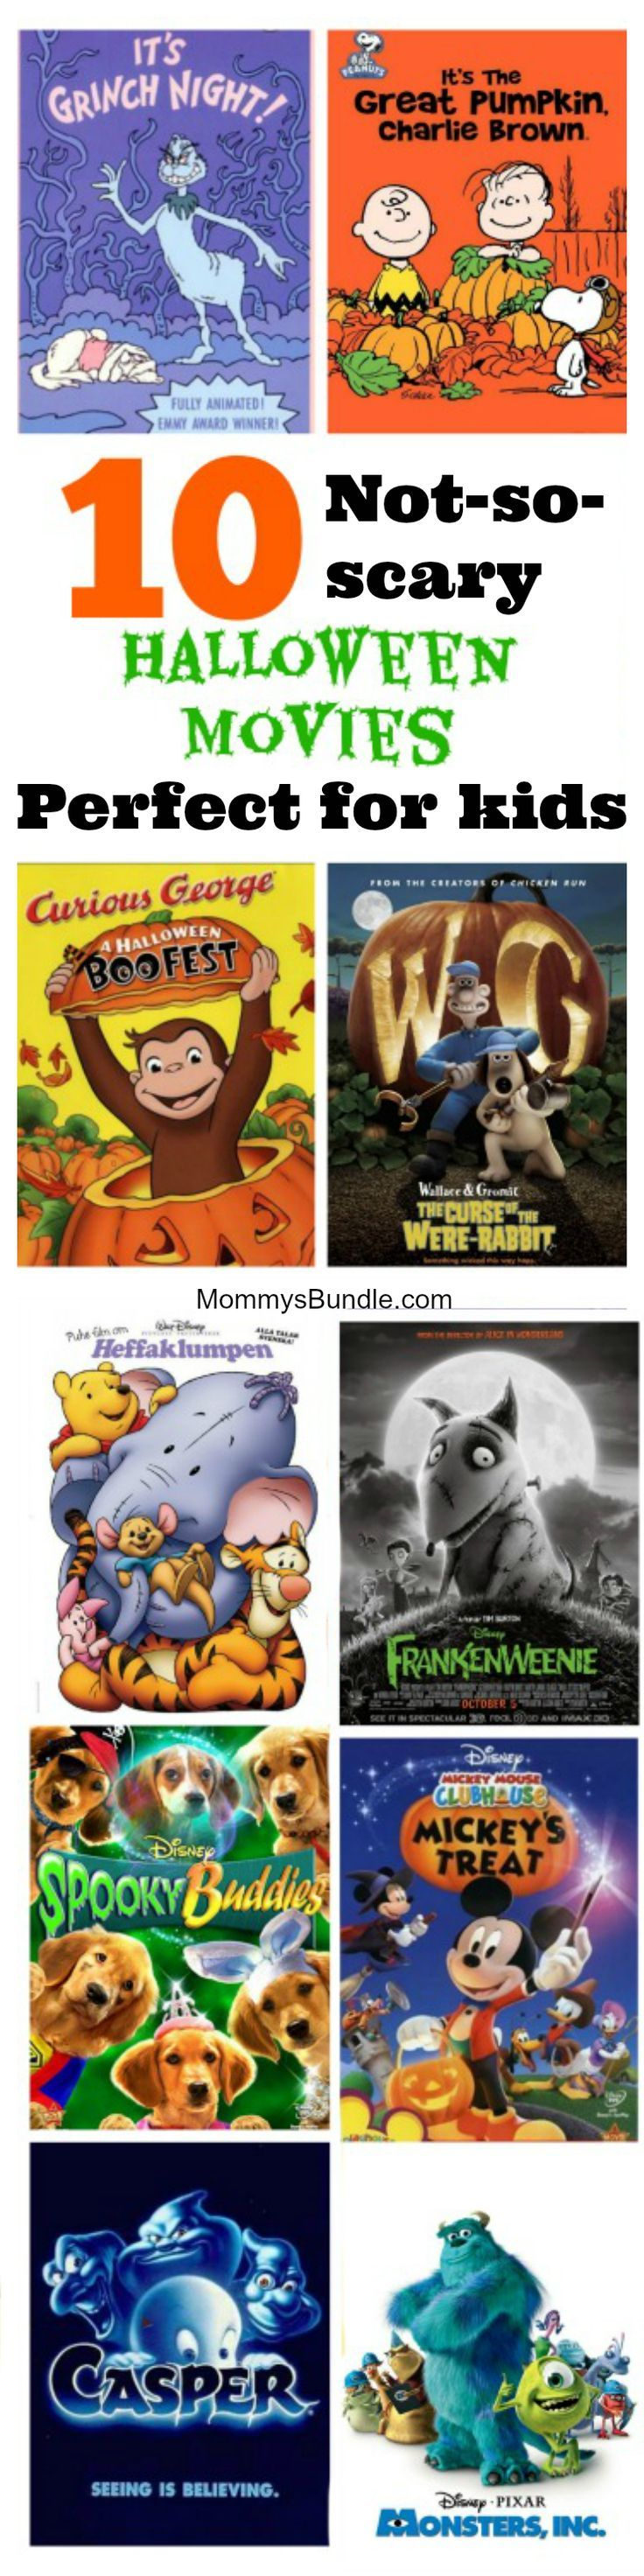 It's hard to find a kid-friendly Halloween movie! This roundup includes 10 top…